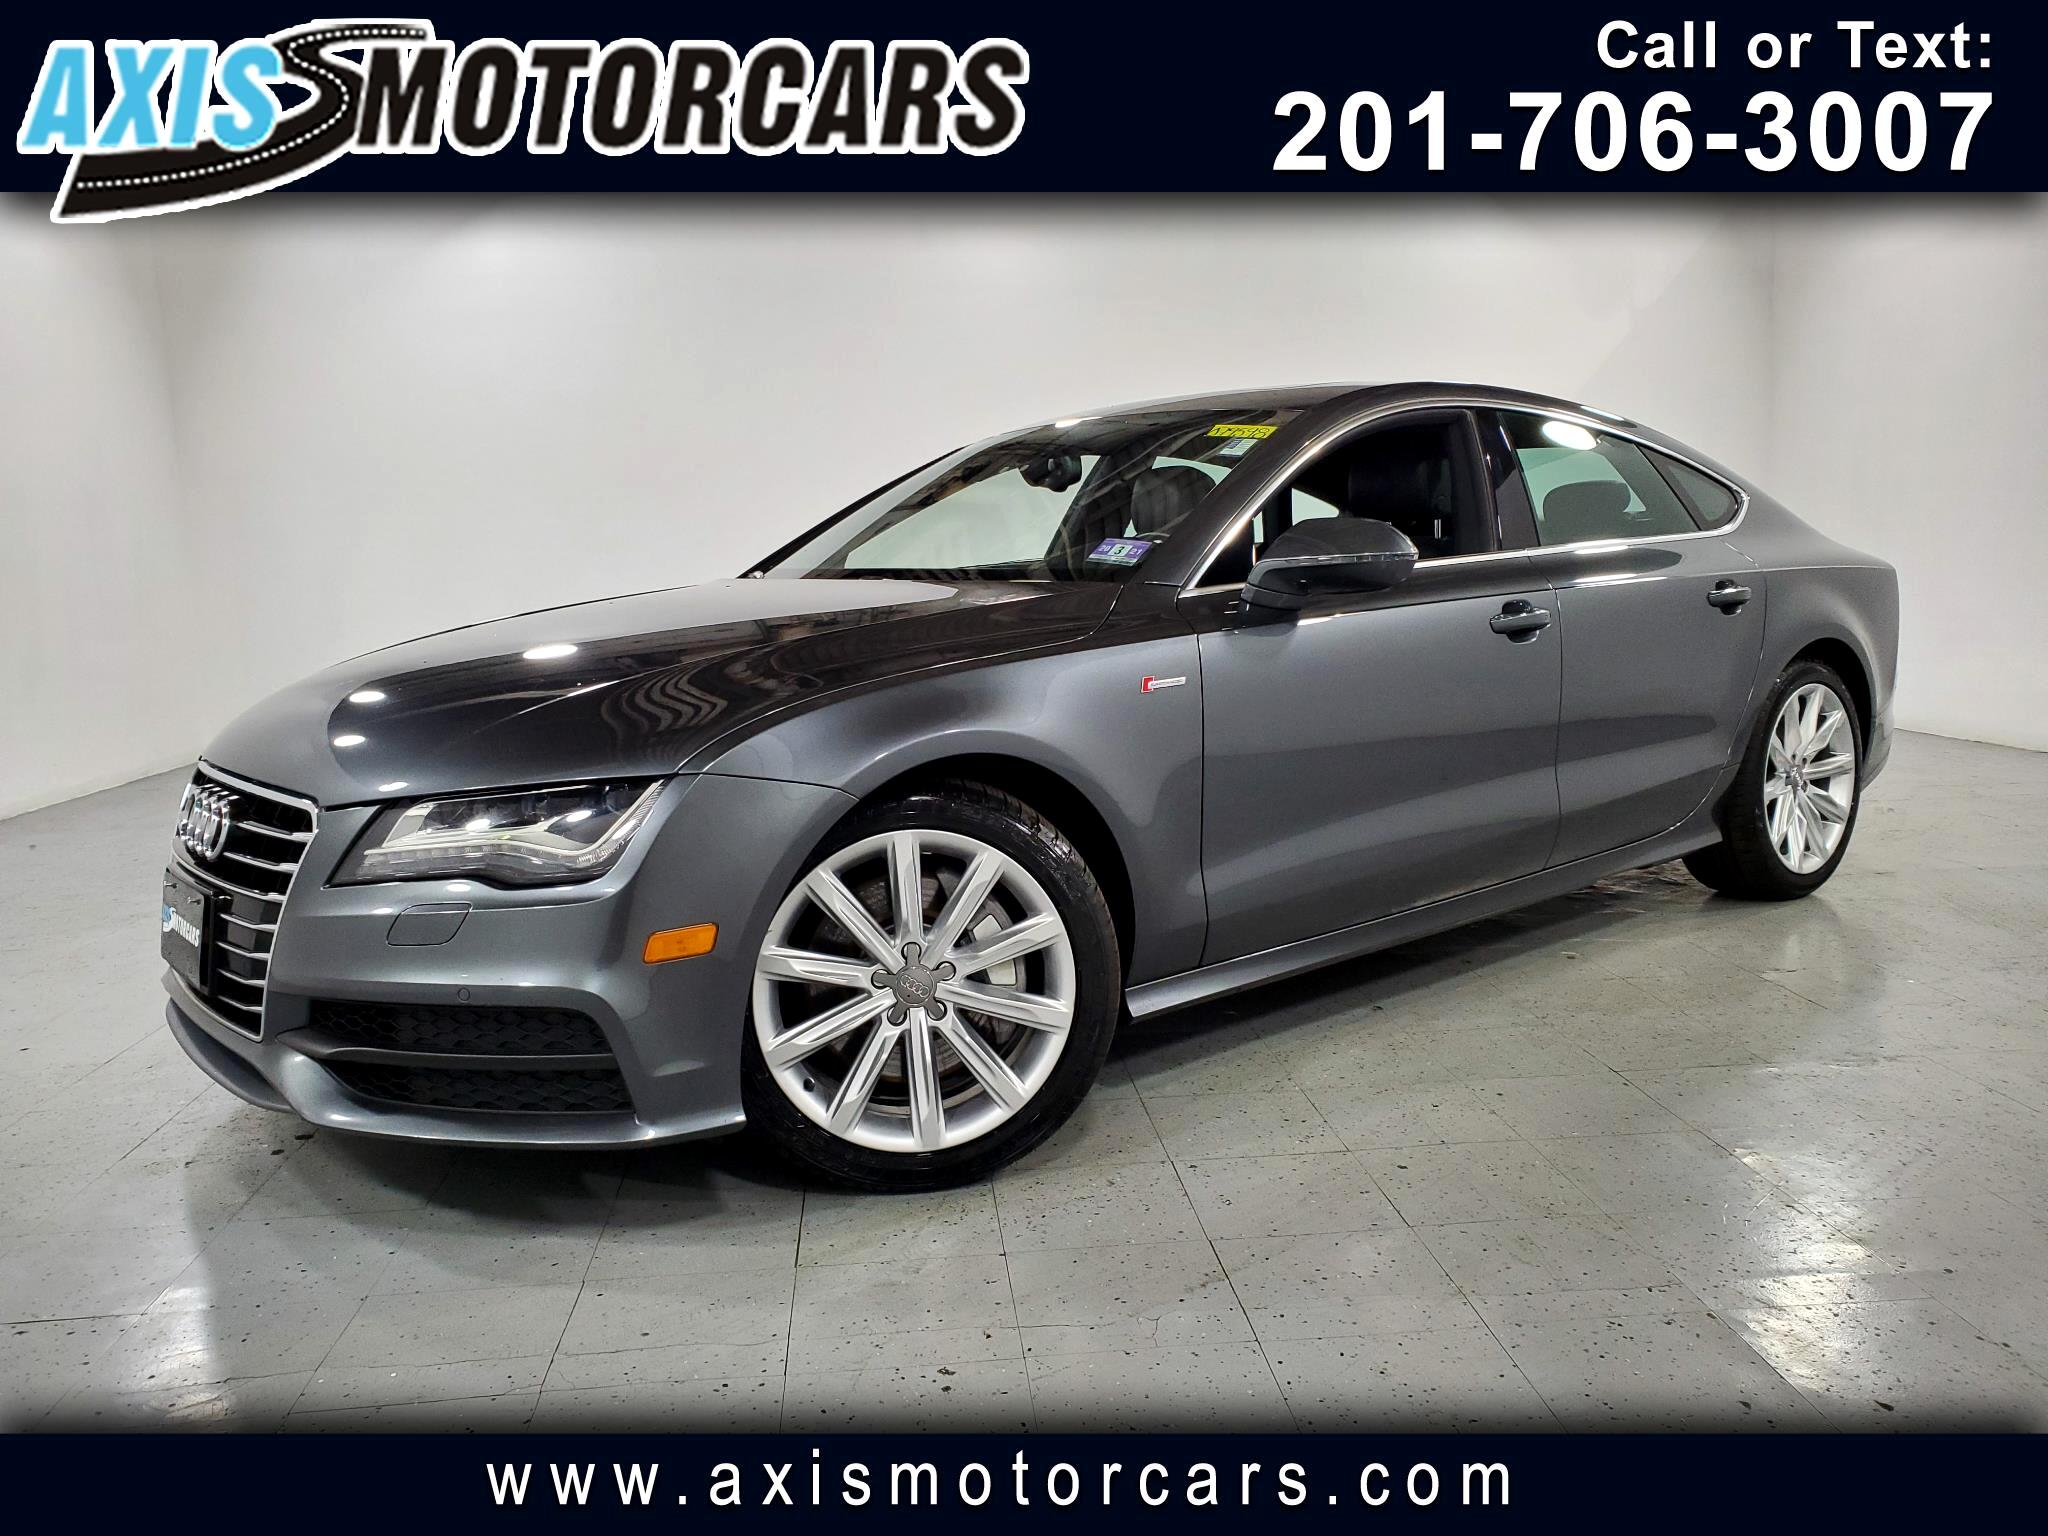 2014 Audi A7 3.0 Prestige w/Navigation Backup Camera Sunroof